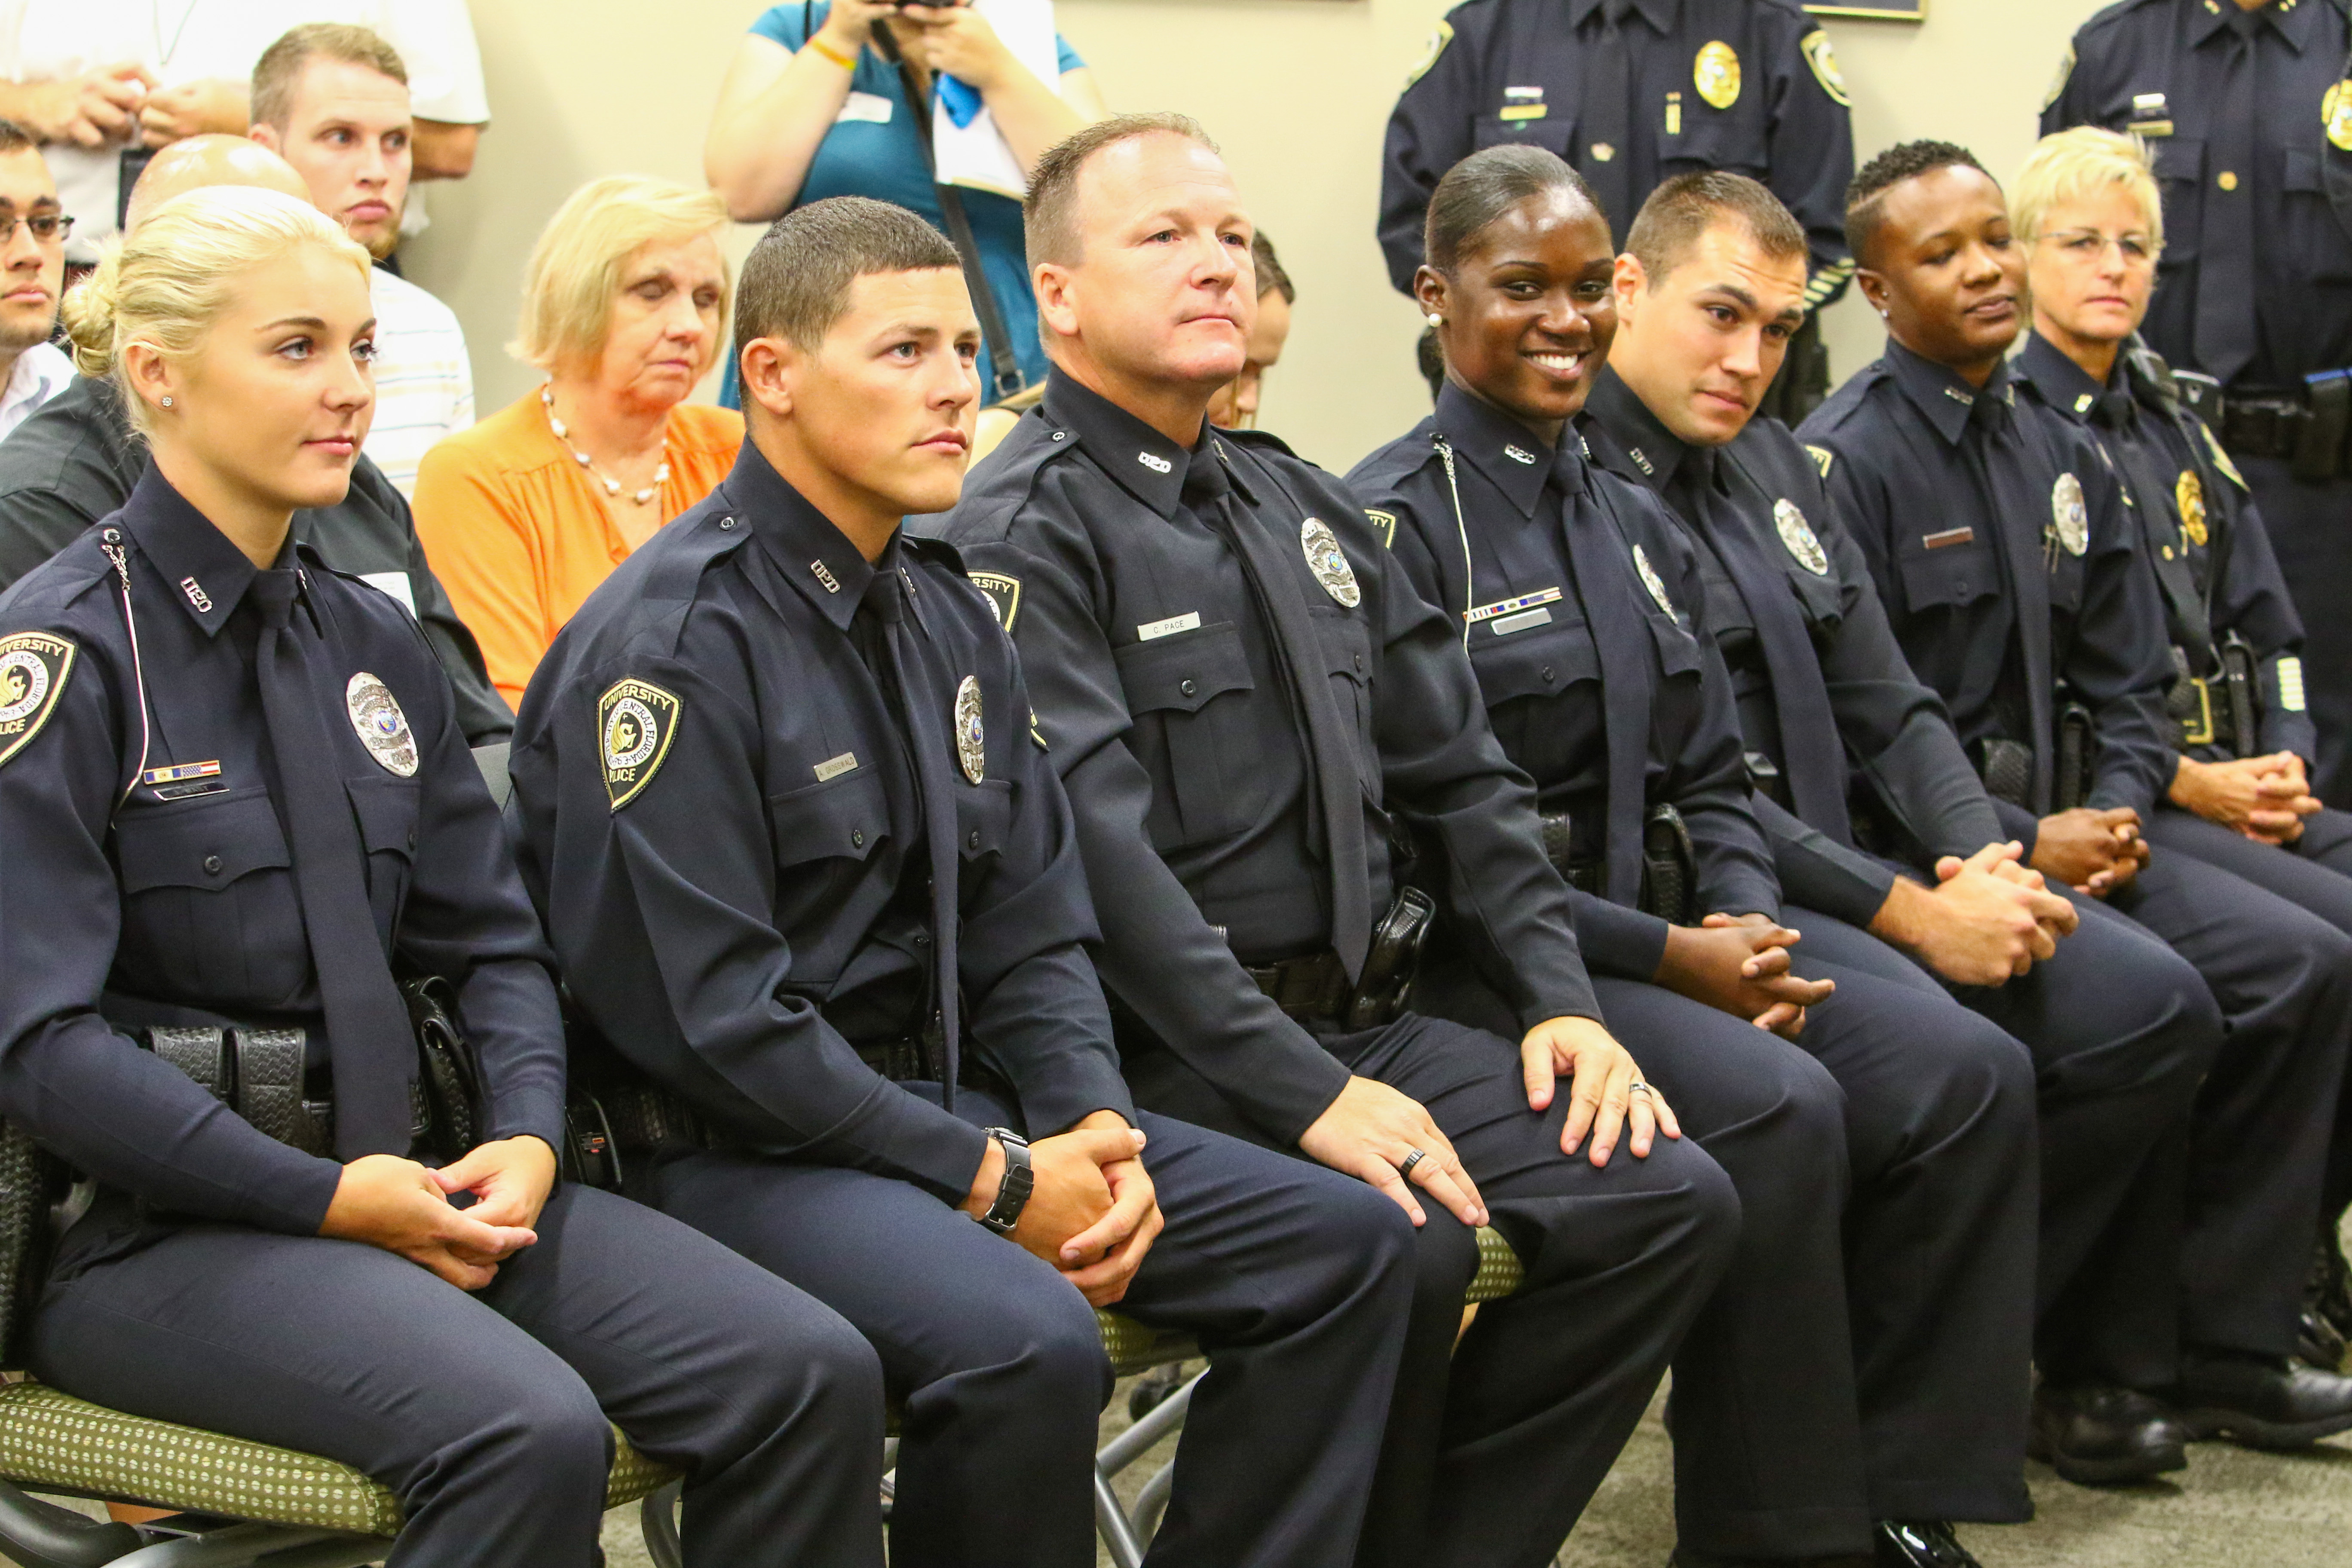 Feed image for UCFPD Swears In New Officers, Lieutenant